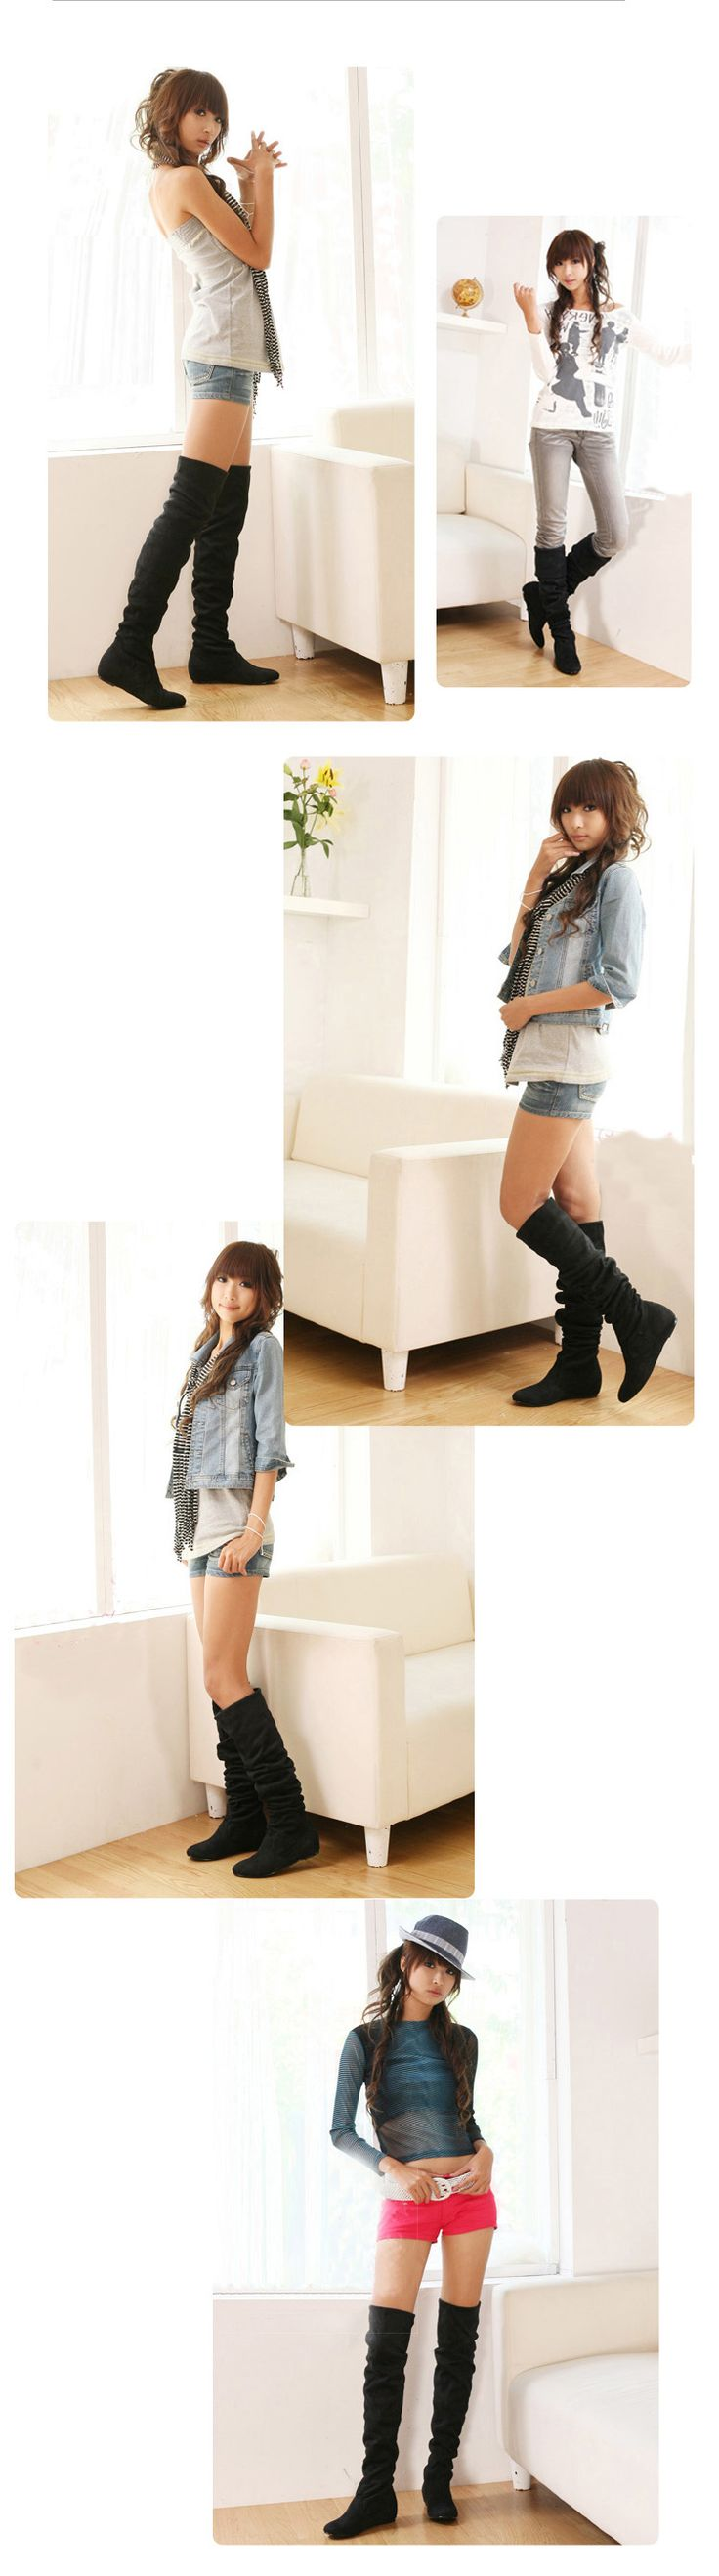 Women boots 2014 spring autumn ladies fashion flat bottom boots shoes over the knee high leg suede low heels boots brand-inBoots from Shoes on Aliexpress.com